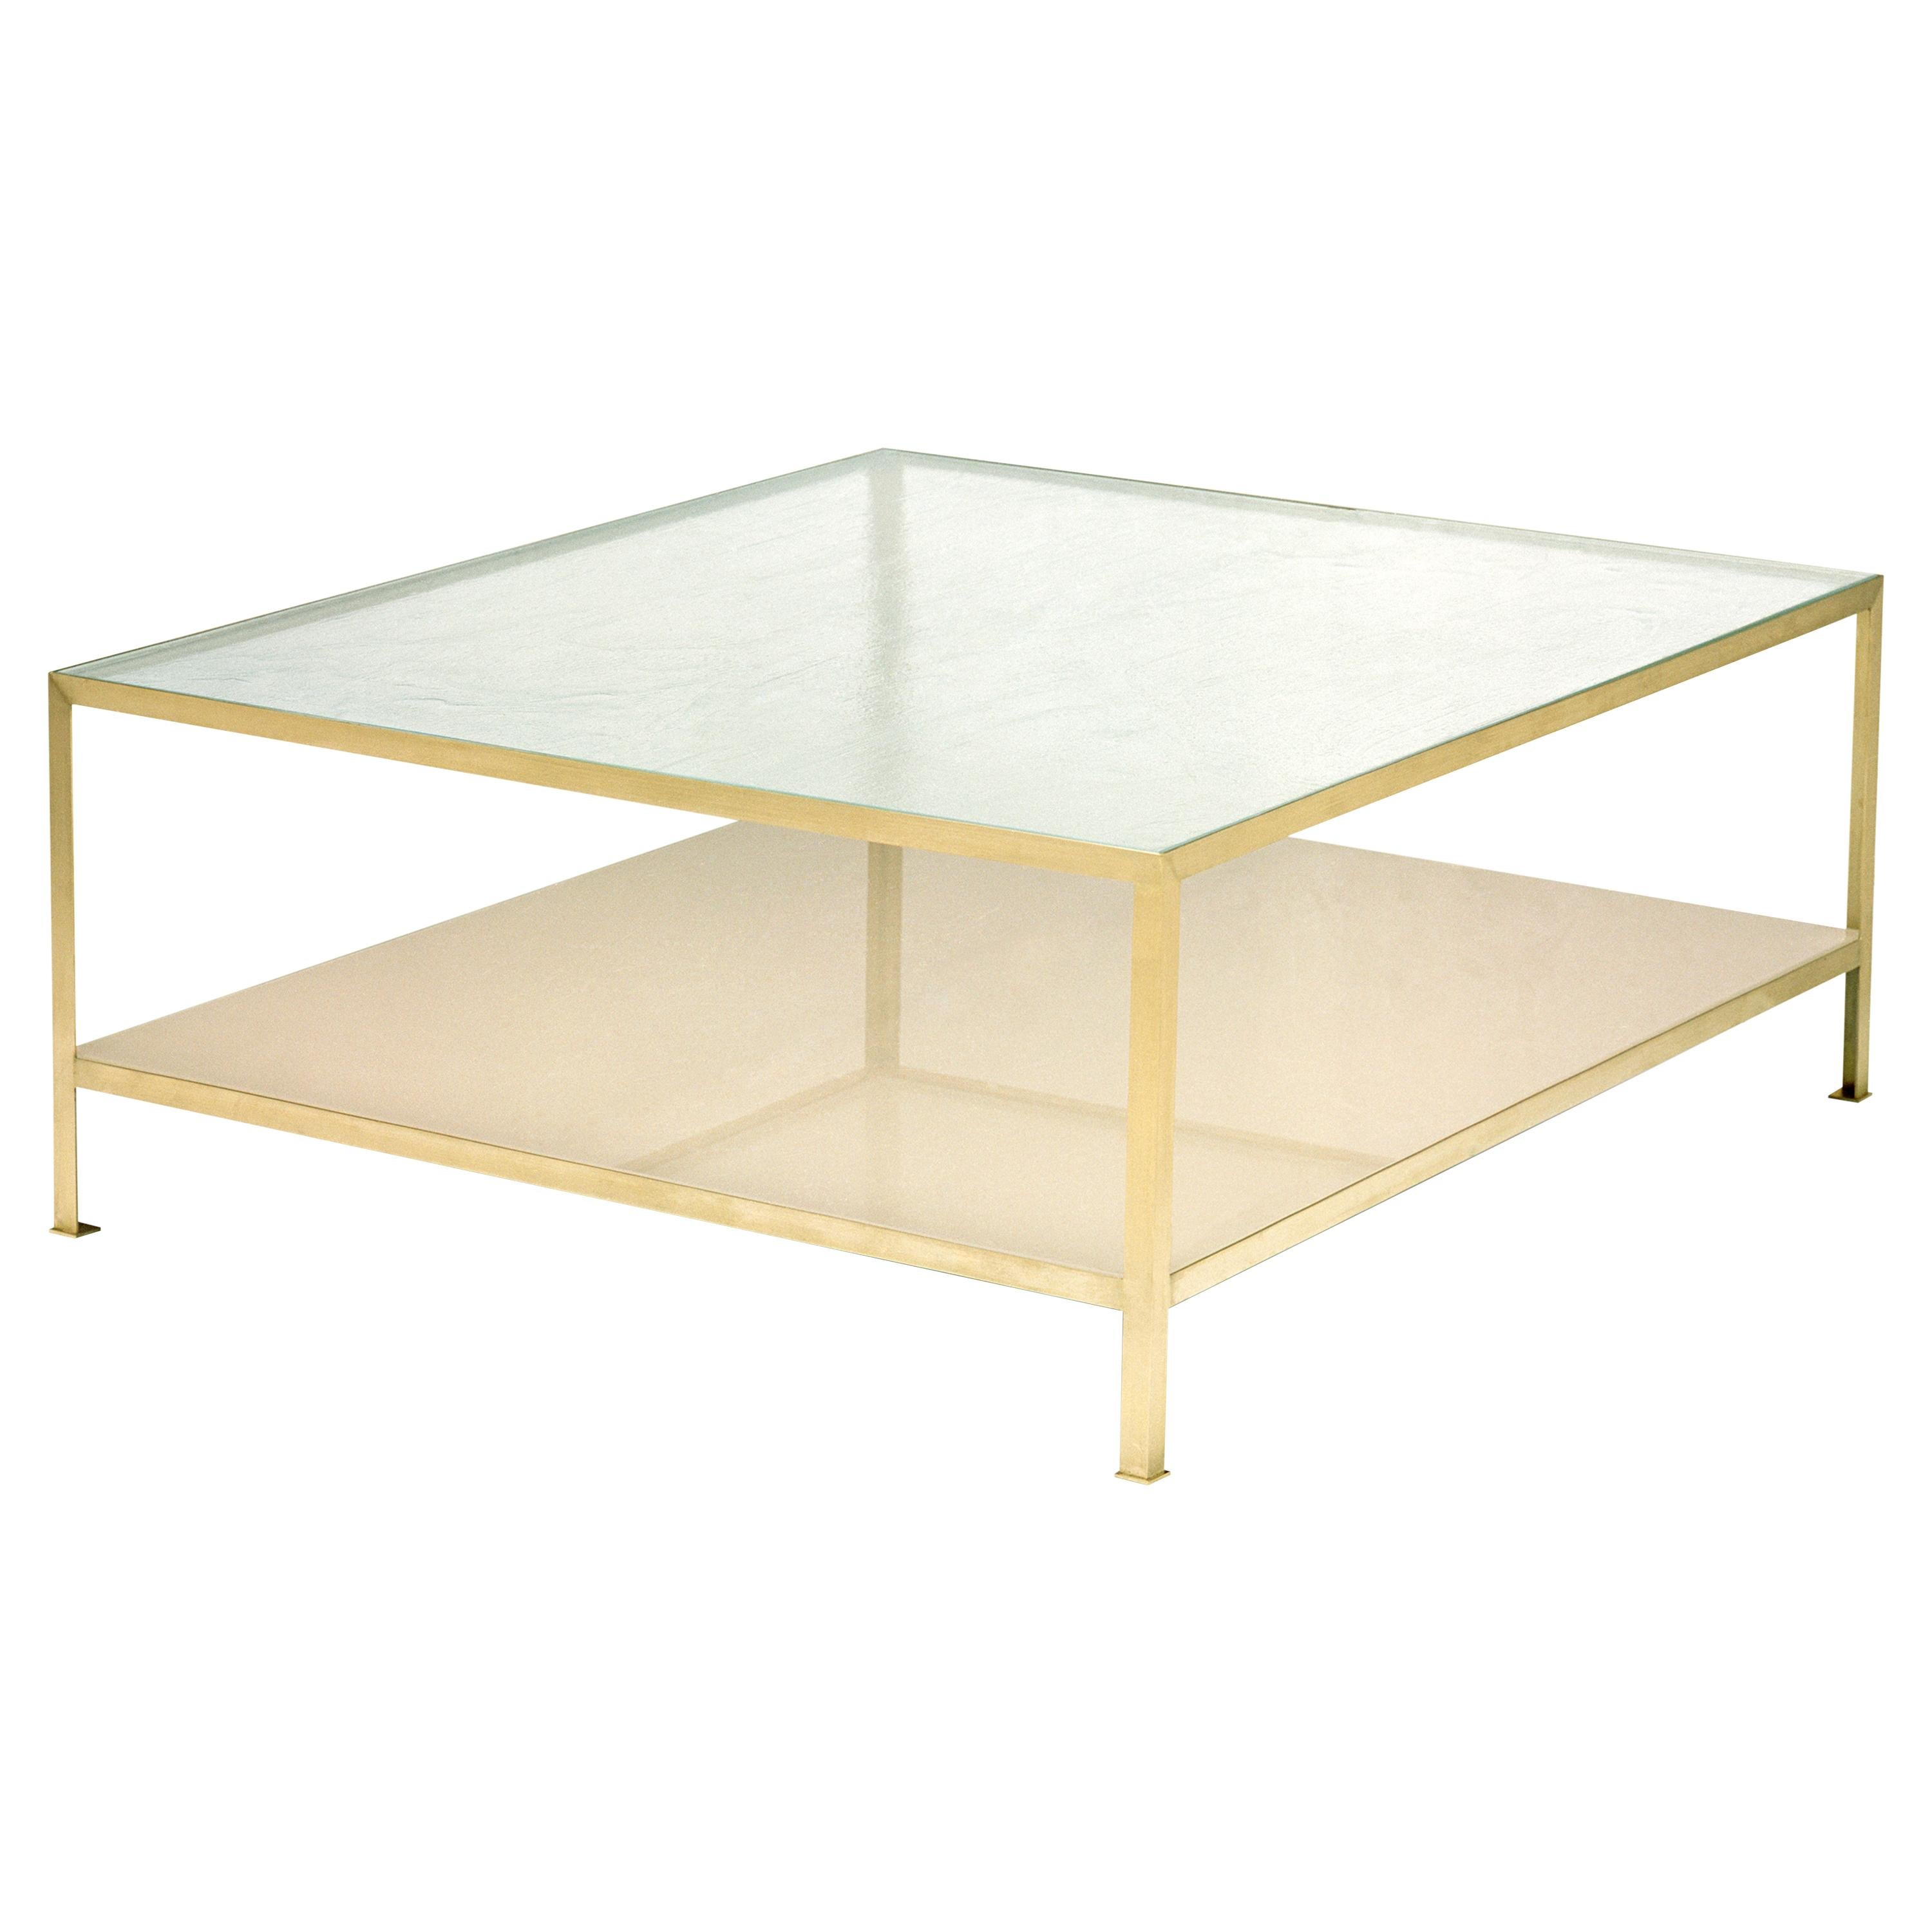 90 glass metal large square coffee table vica designed by annabelle selldorf